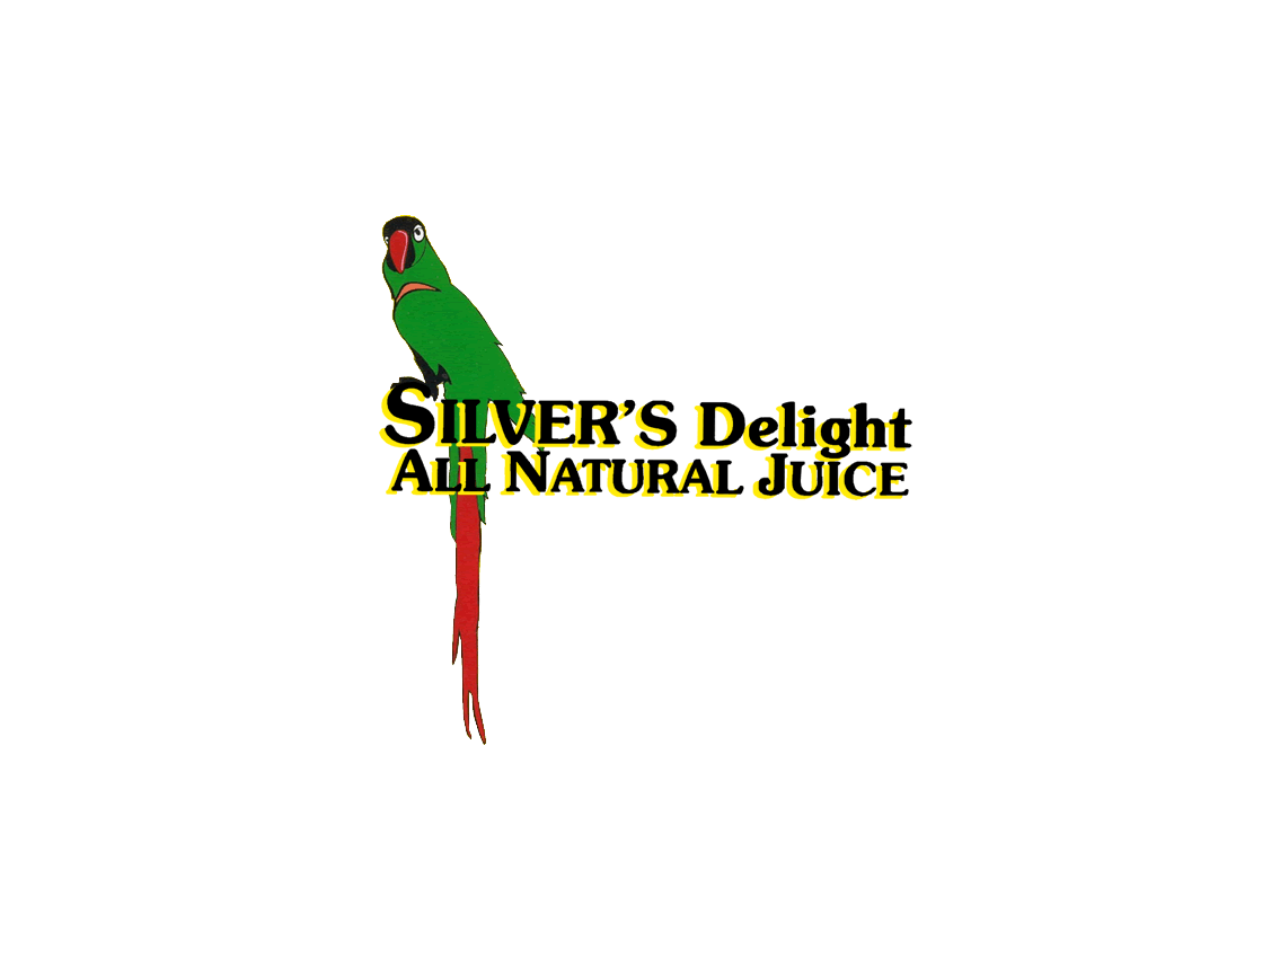 Silvers Delight All Natural Juice